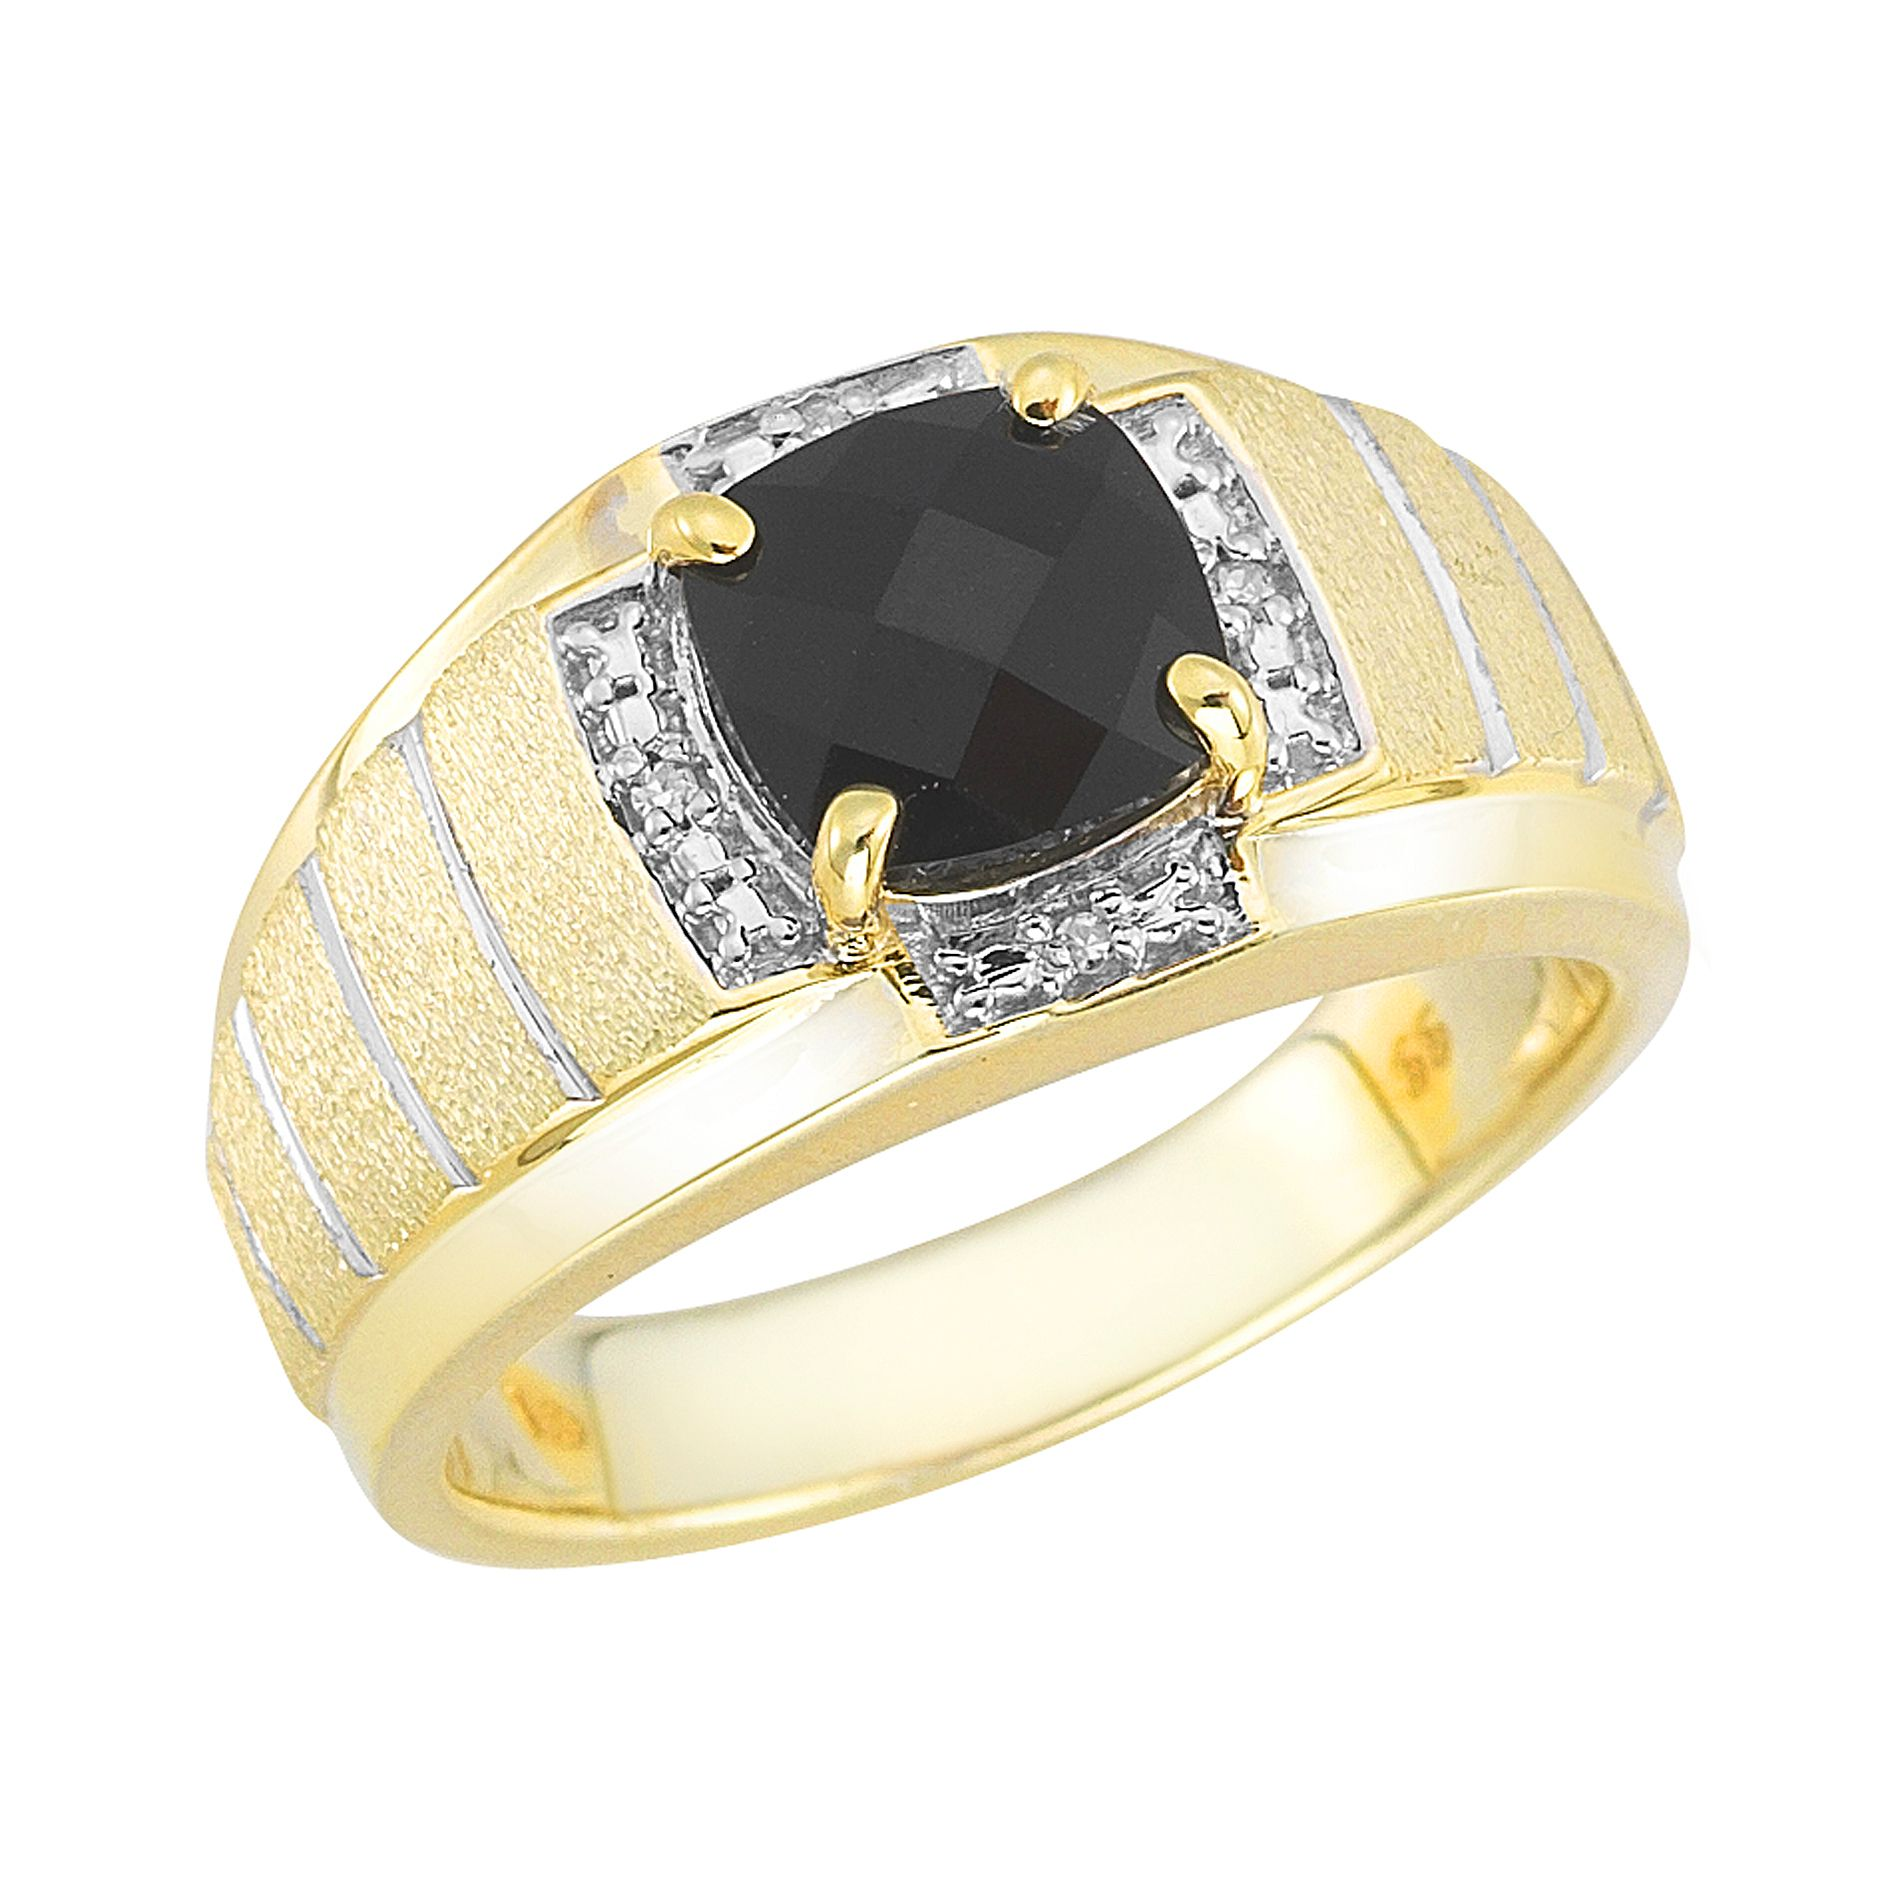 18Kt Gold Over Sterling Silver Black Onyx and Diamond Accent Ring